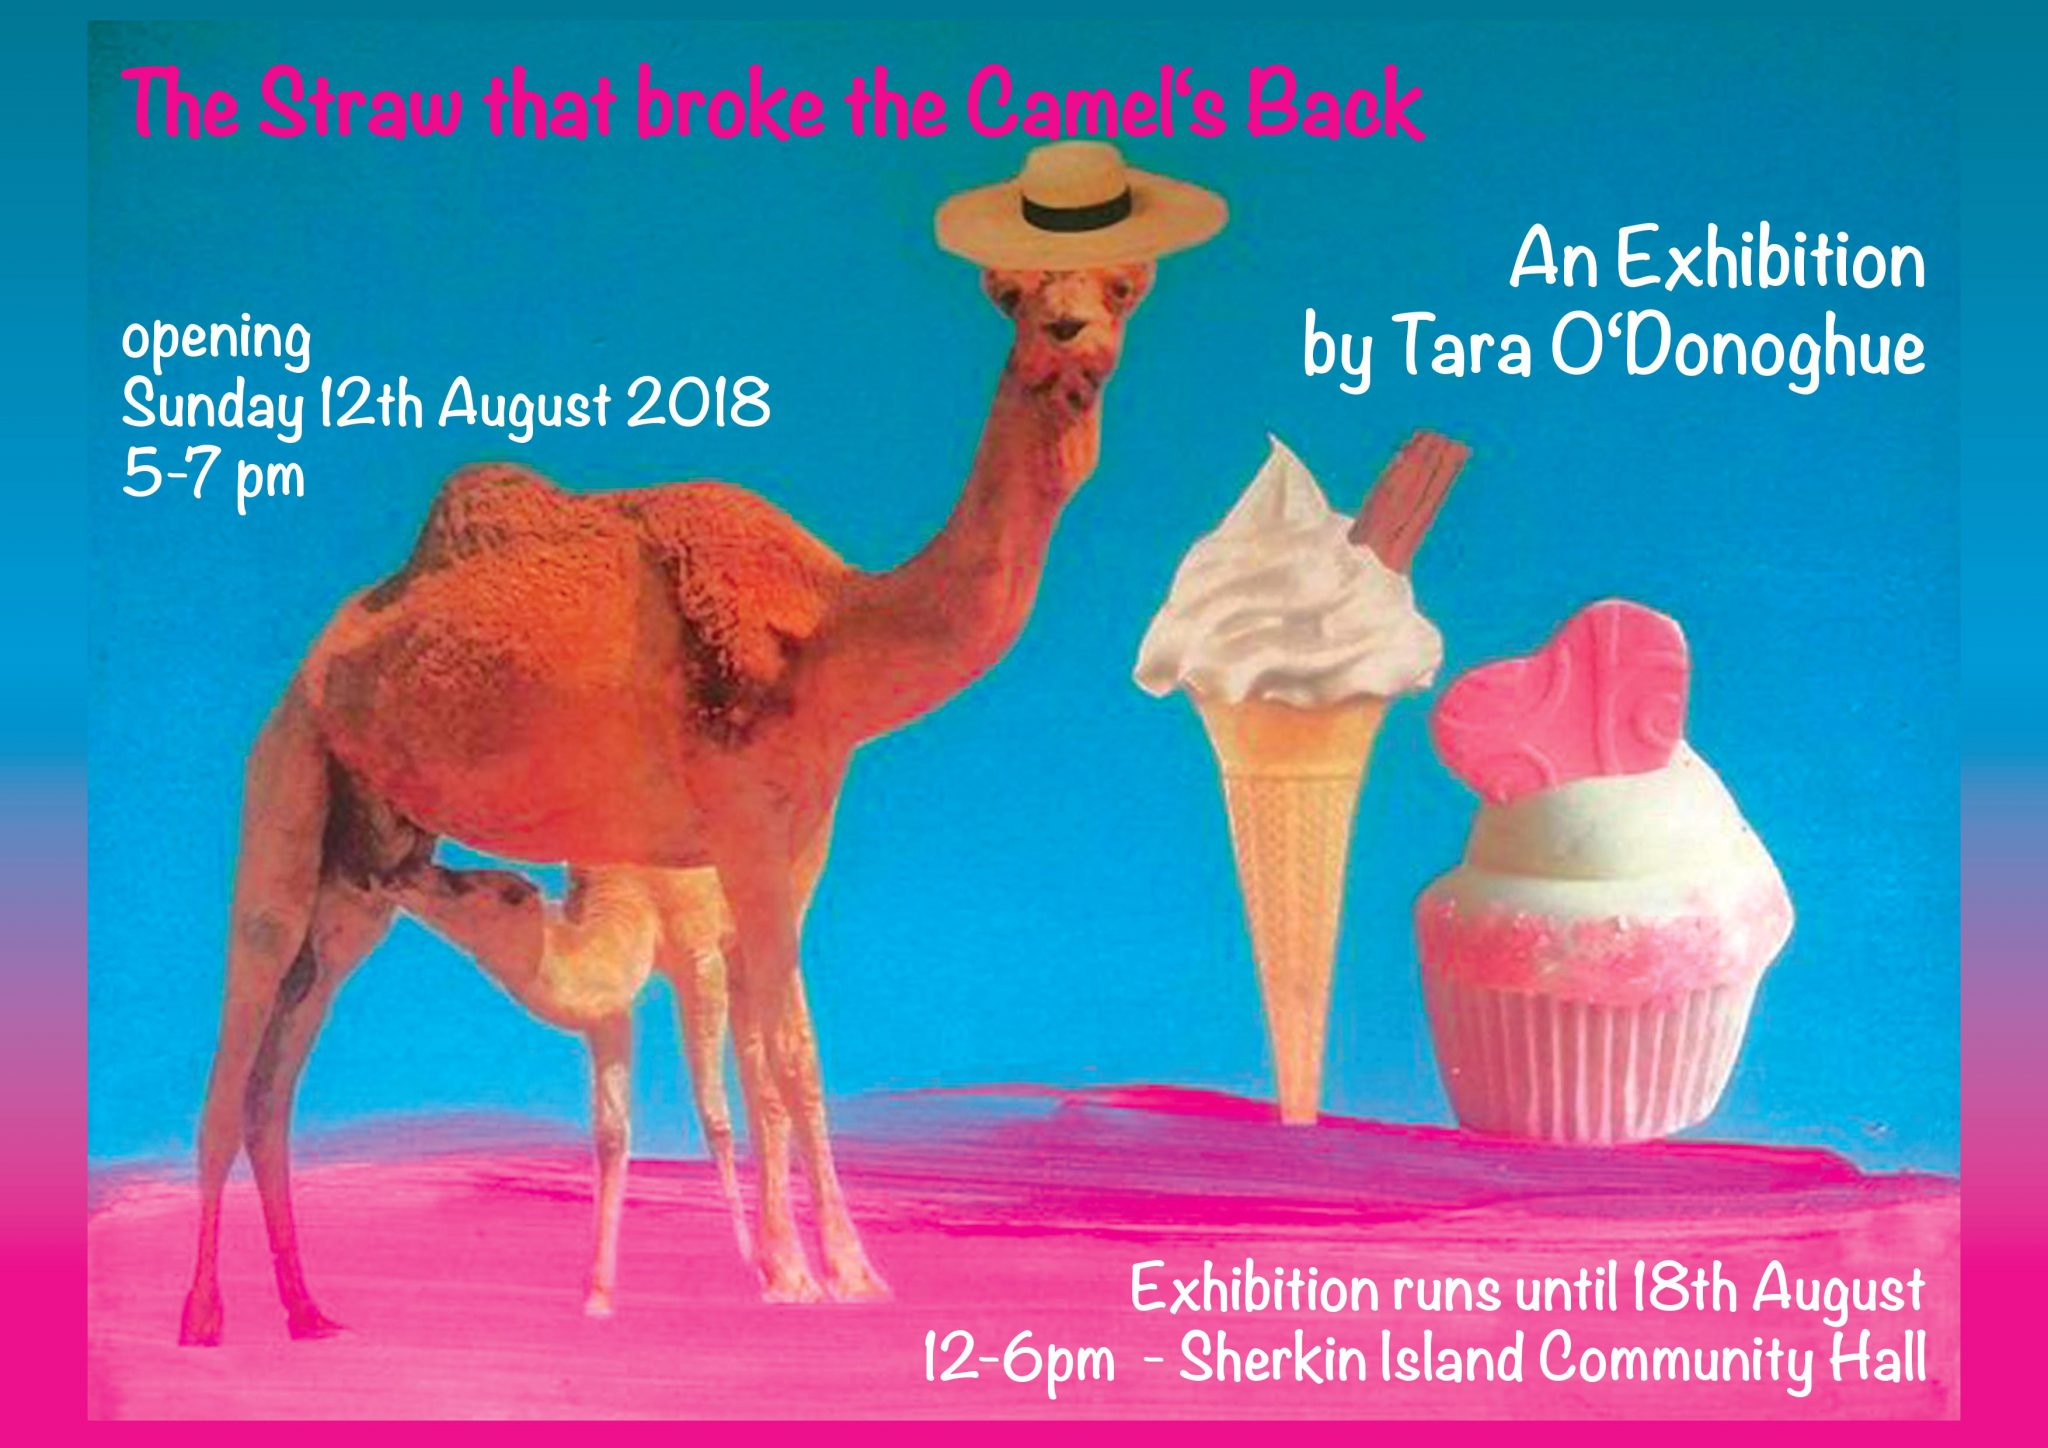 The Straw That Broke the Camel's Back [Exhibition